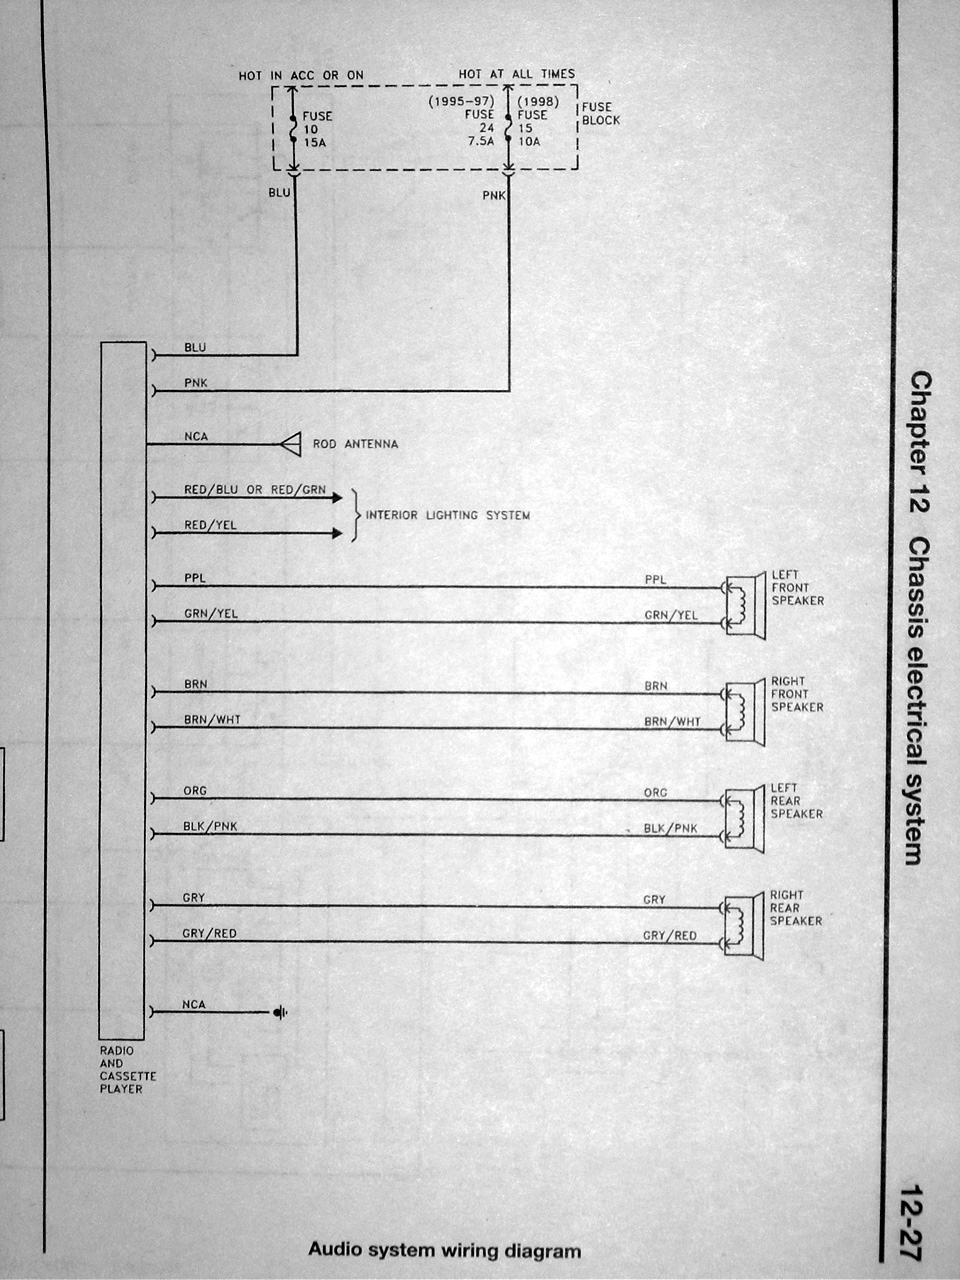 DSC01849 wiring diagram thread *useful info* nissan forum 2005 nissan 350z headlight wiring diagram at gsmportal.co